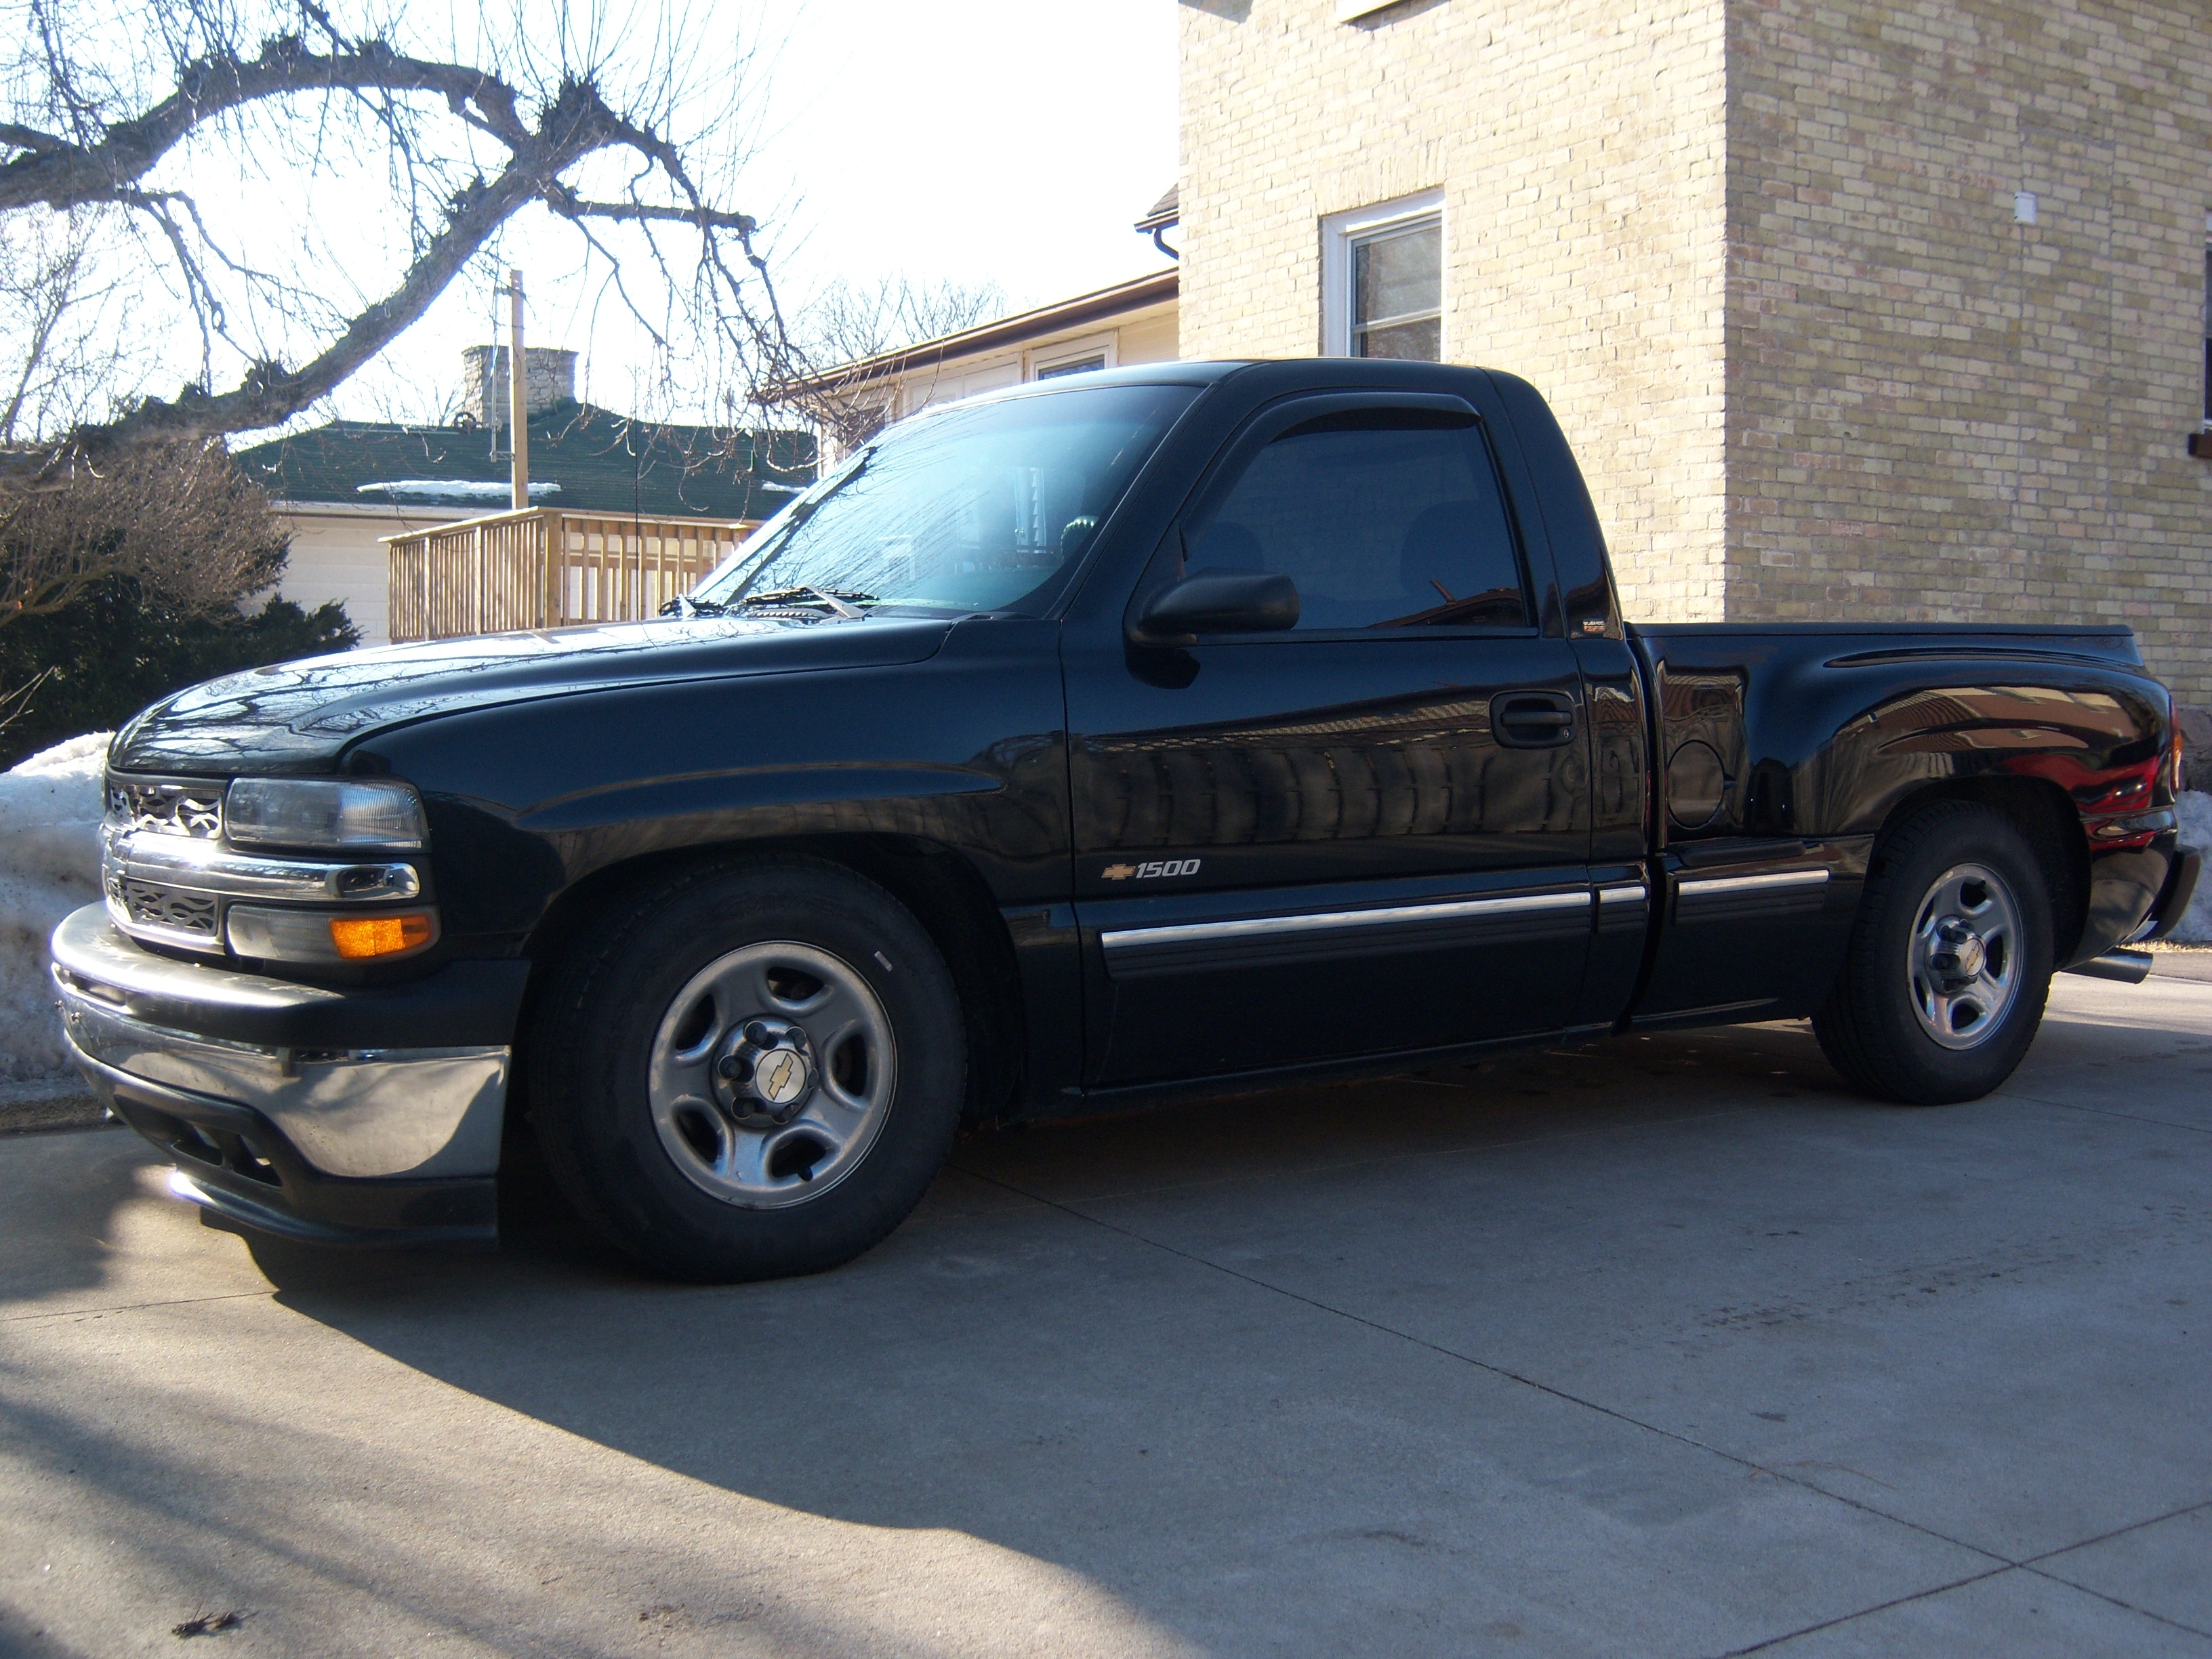 kdinner 2001 chevrolet silverado 1500 regular cab specs photos modification info at cardomain. Black Bedroom Furniture Sets. Home Design Ideas